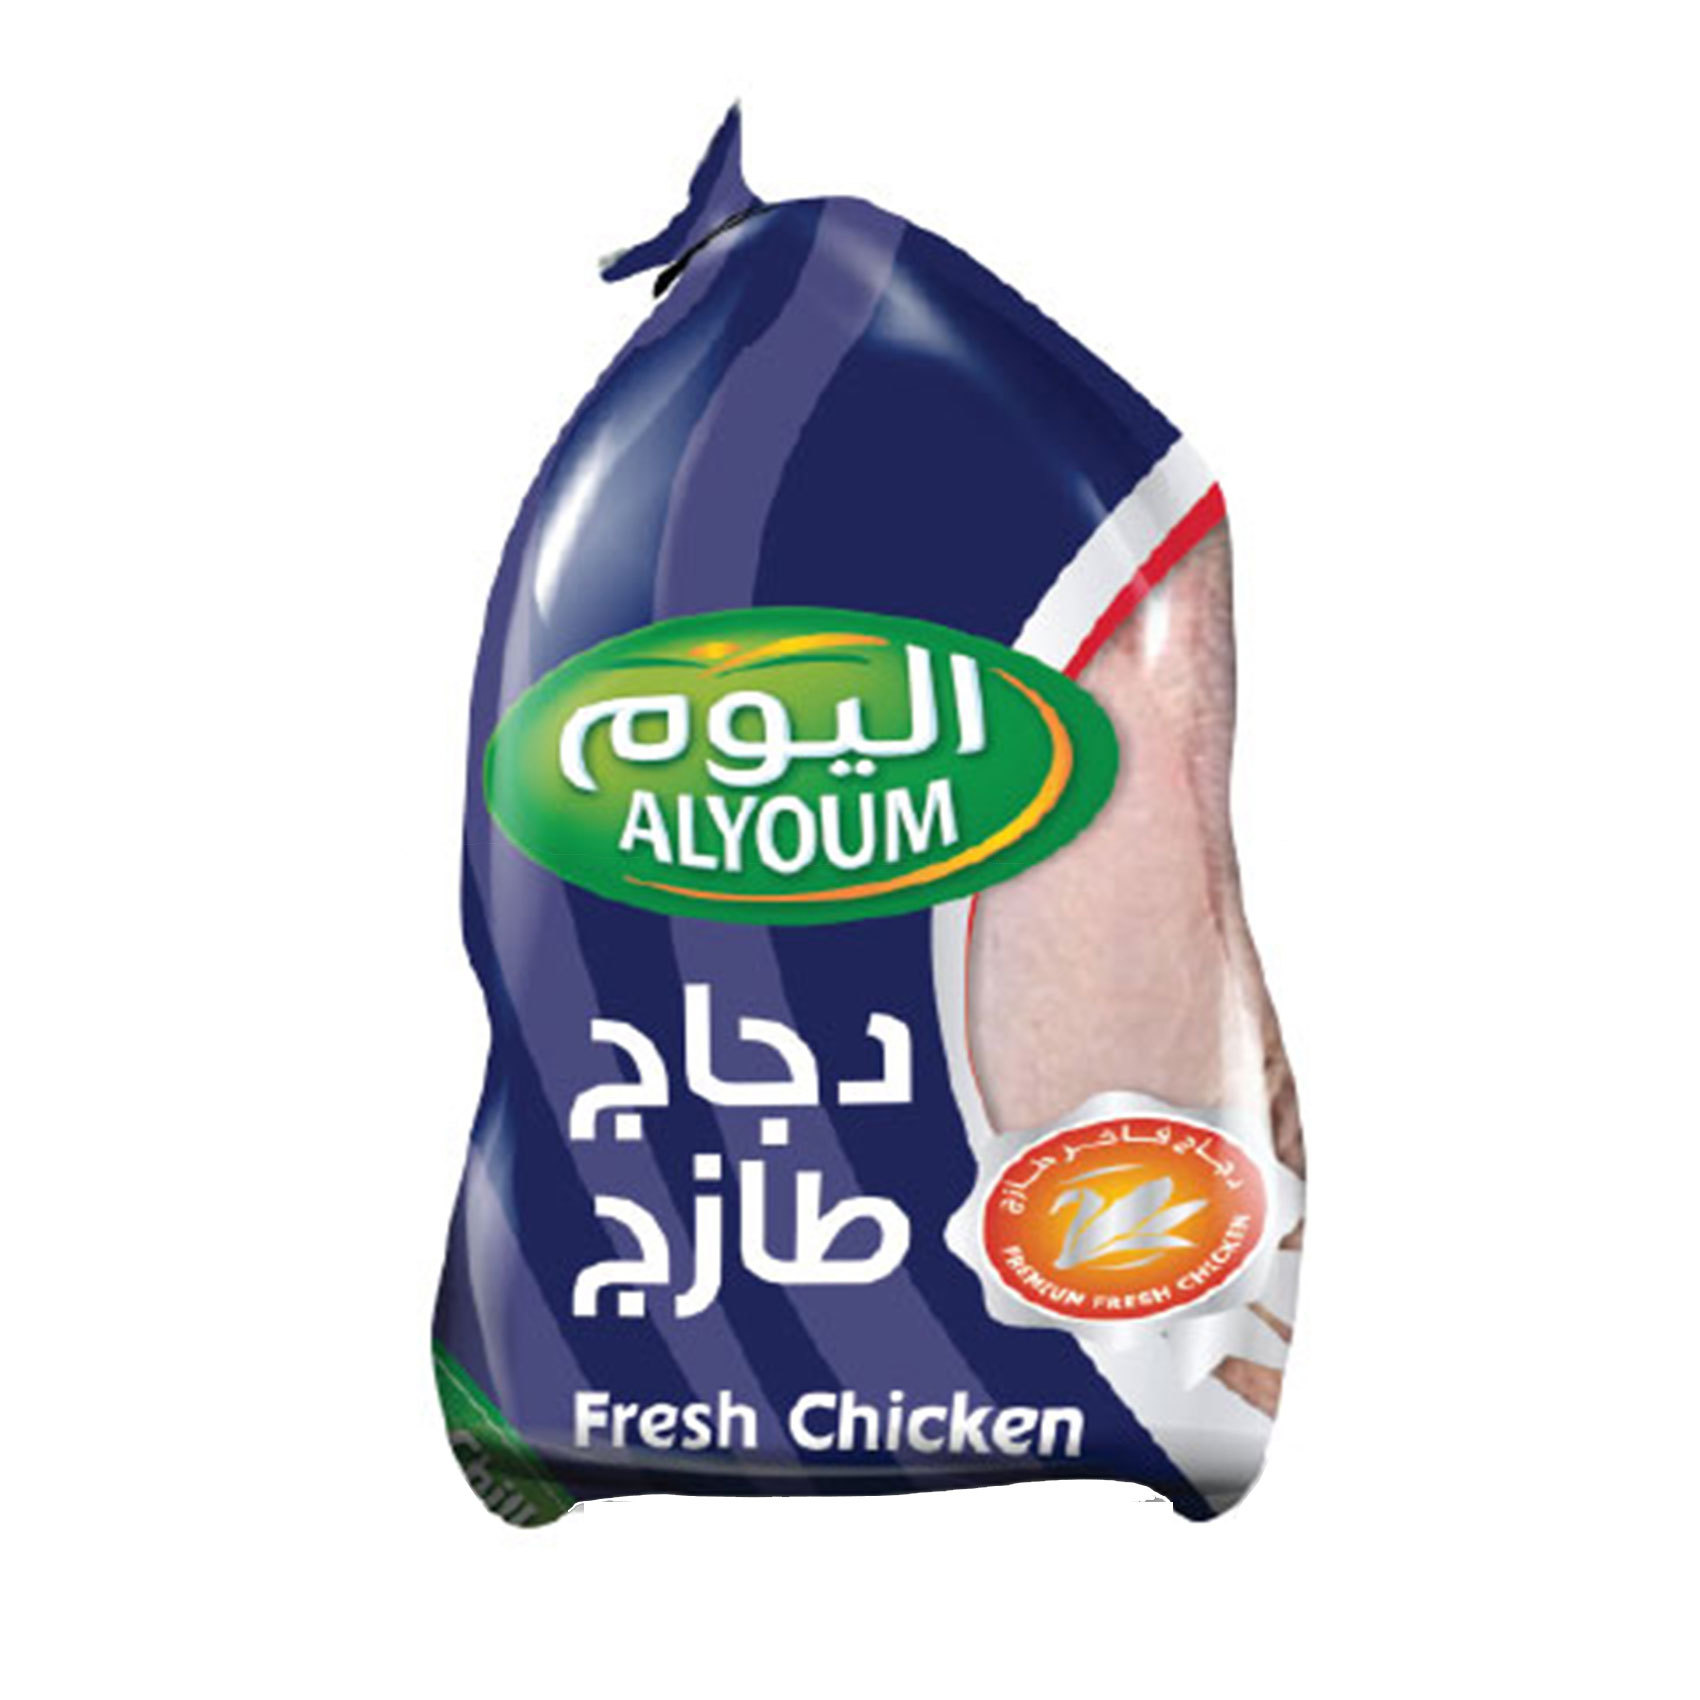 ALYOUM FRESH CHICKEN 1000G